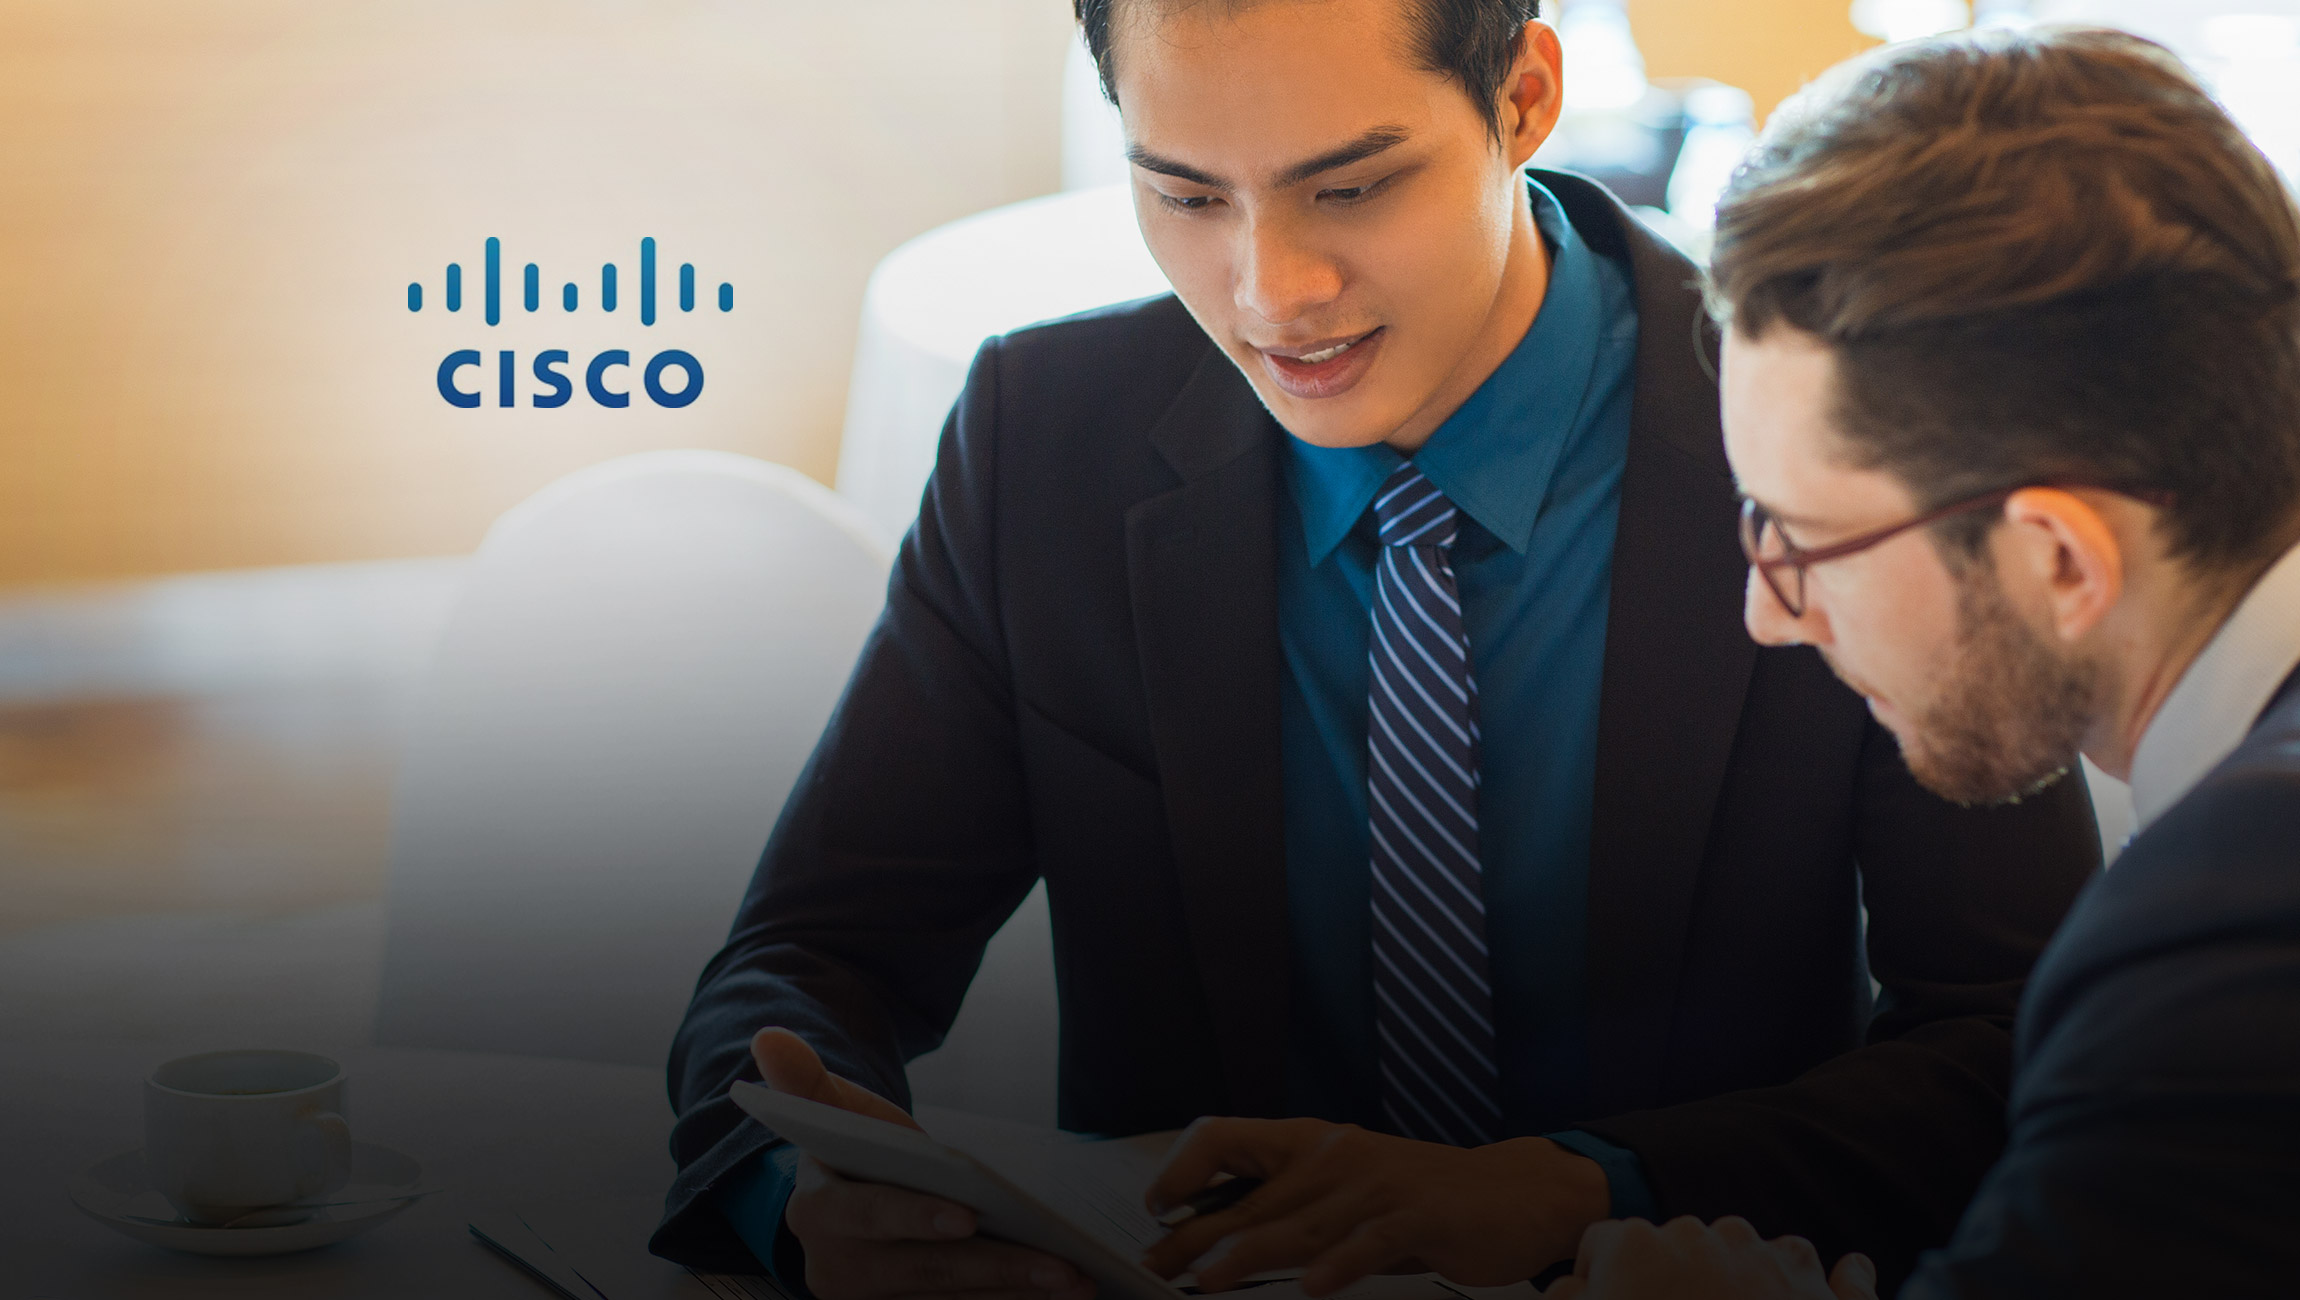 Cisco Announces Wave of Webex Innovation to Drive 10x Better Than In-Person Experiences and Much More